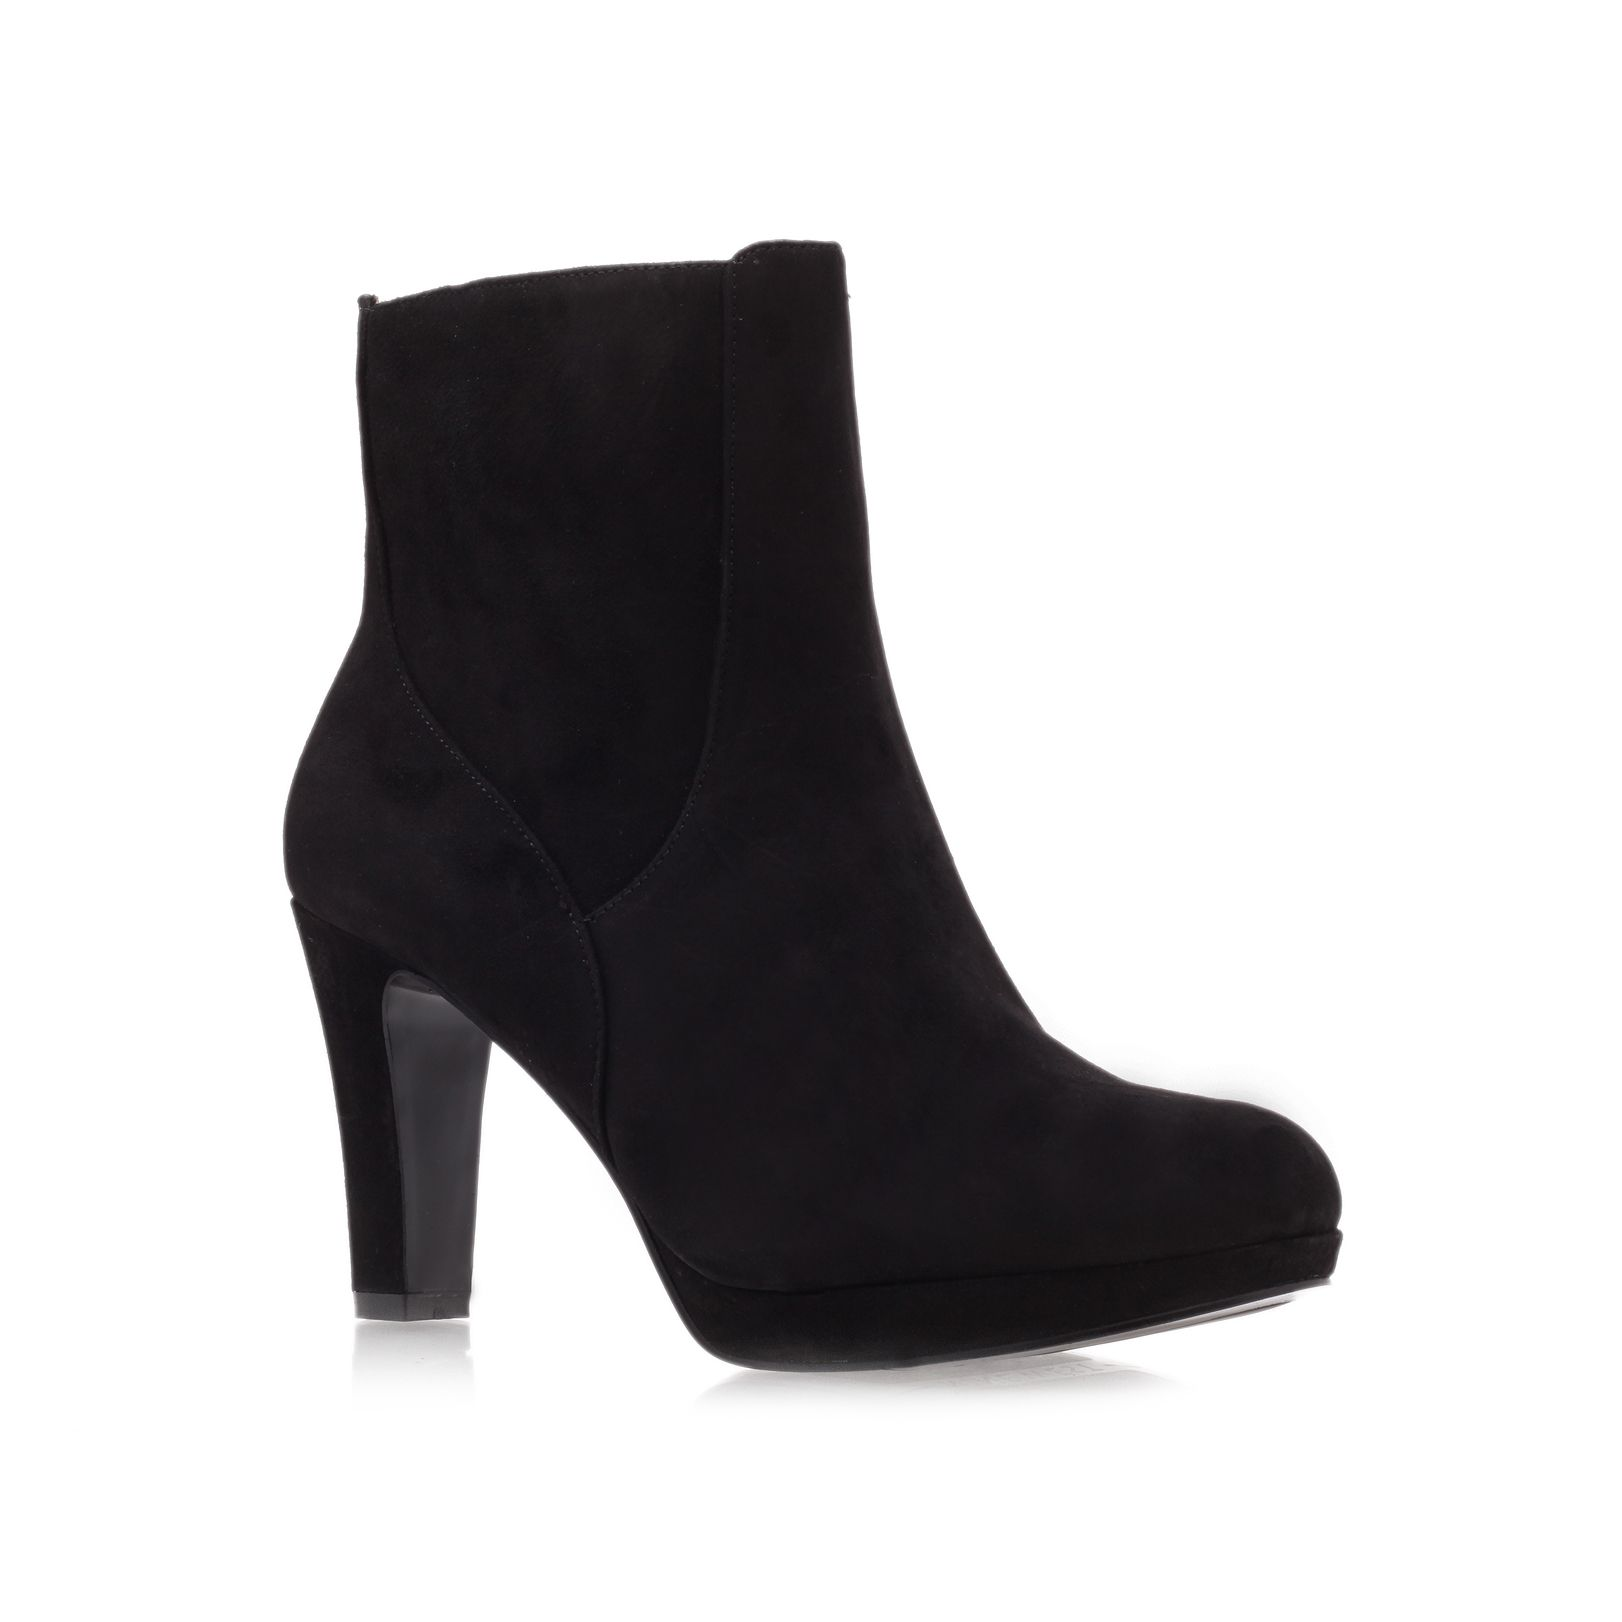 Pook ankle boots